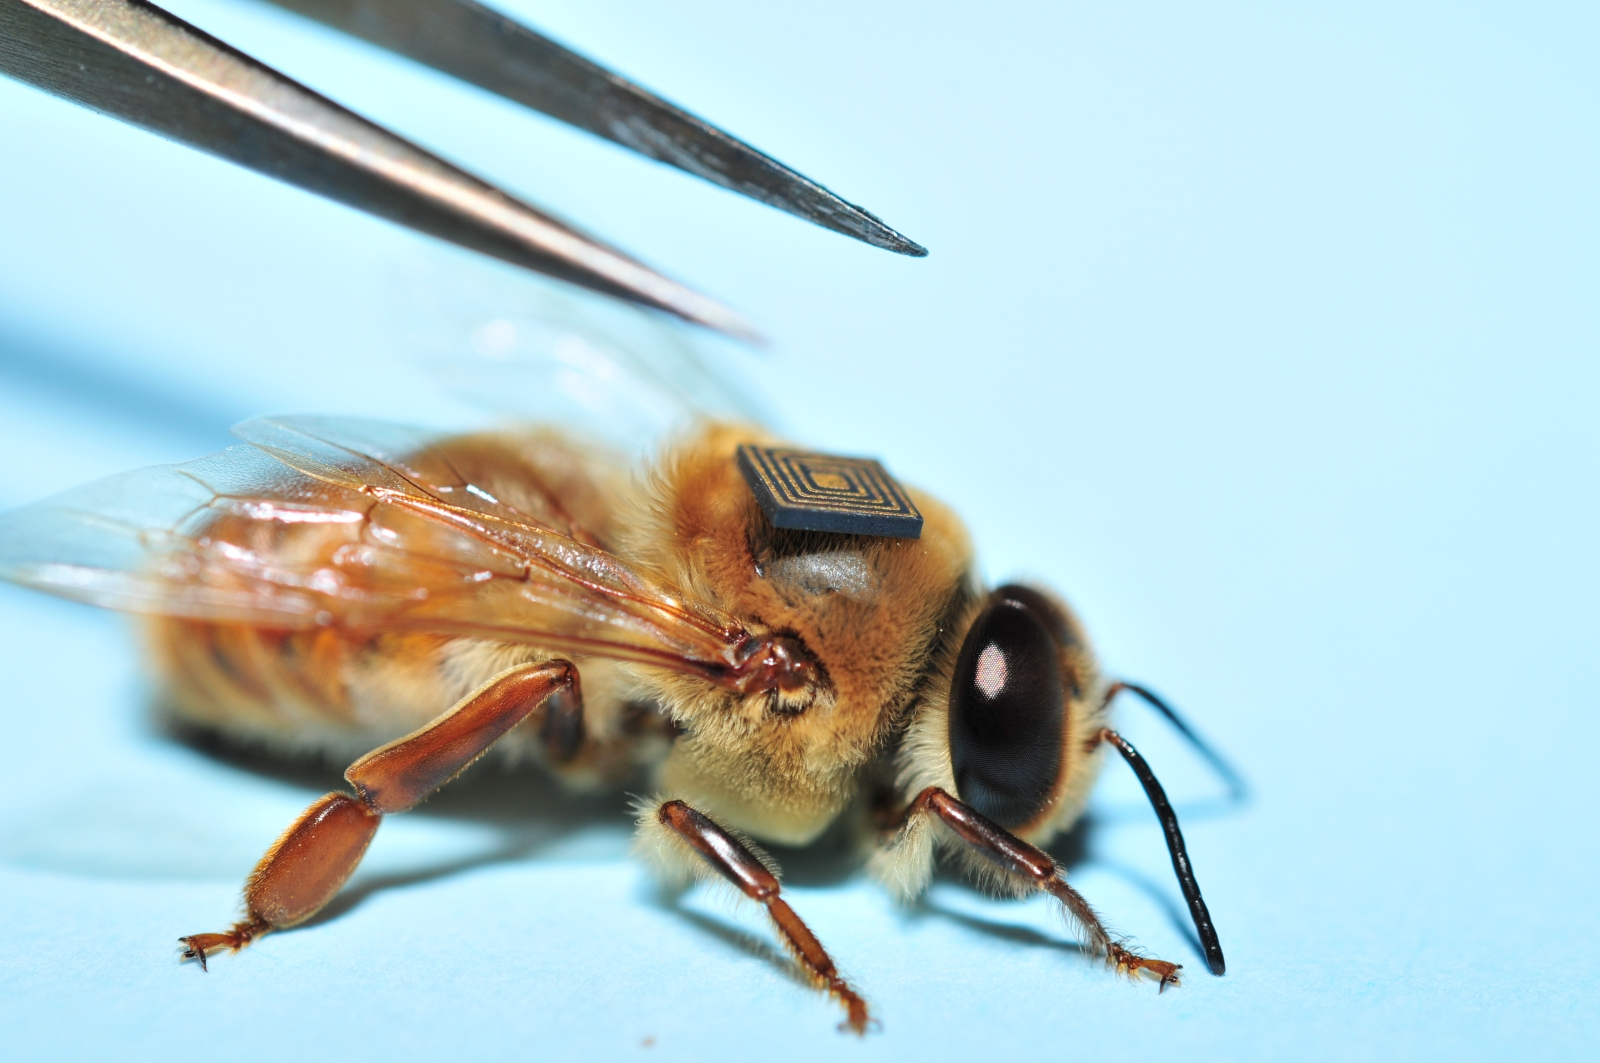 Honey bee with tracker